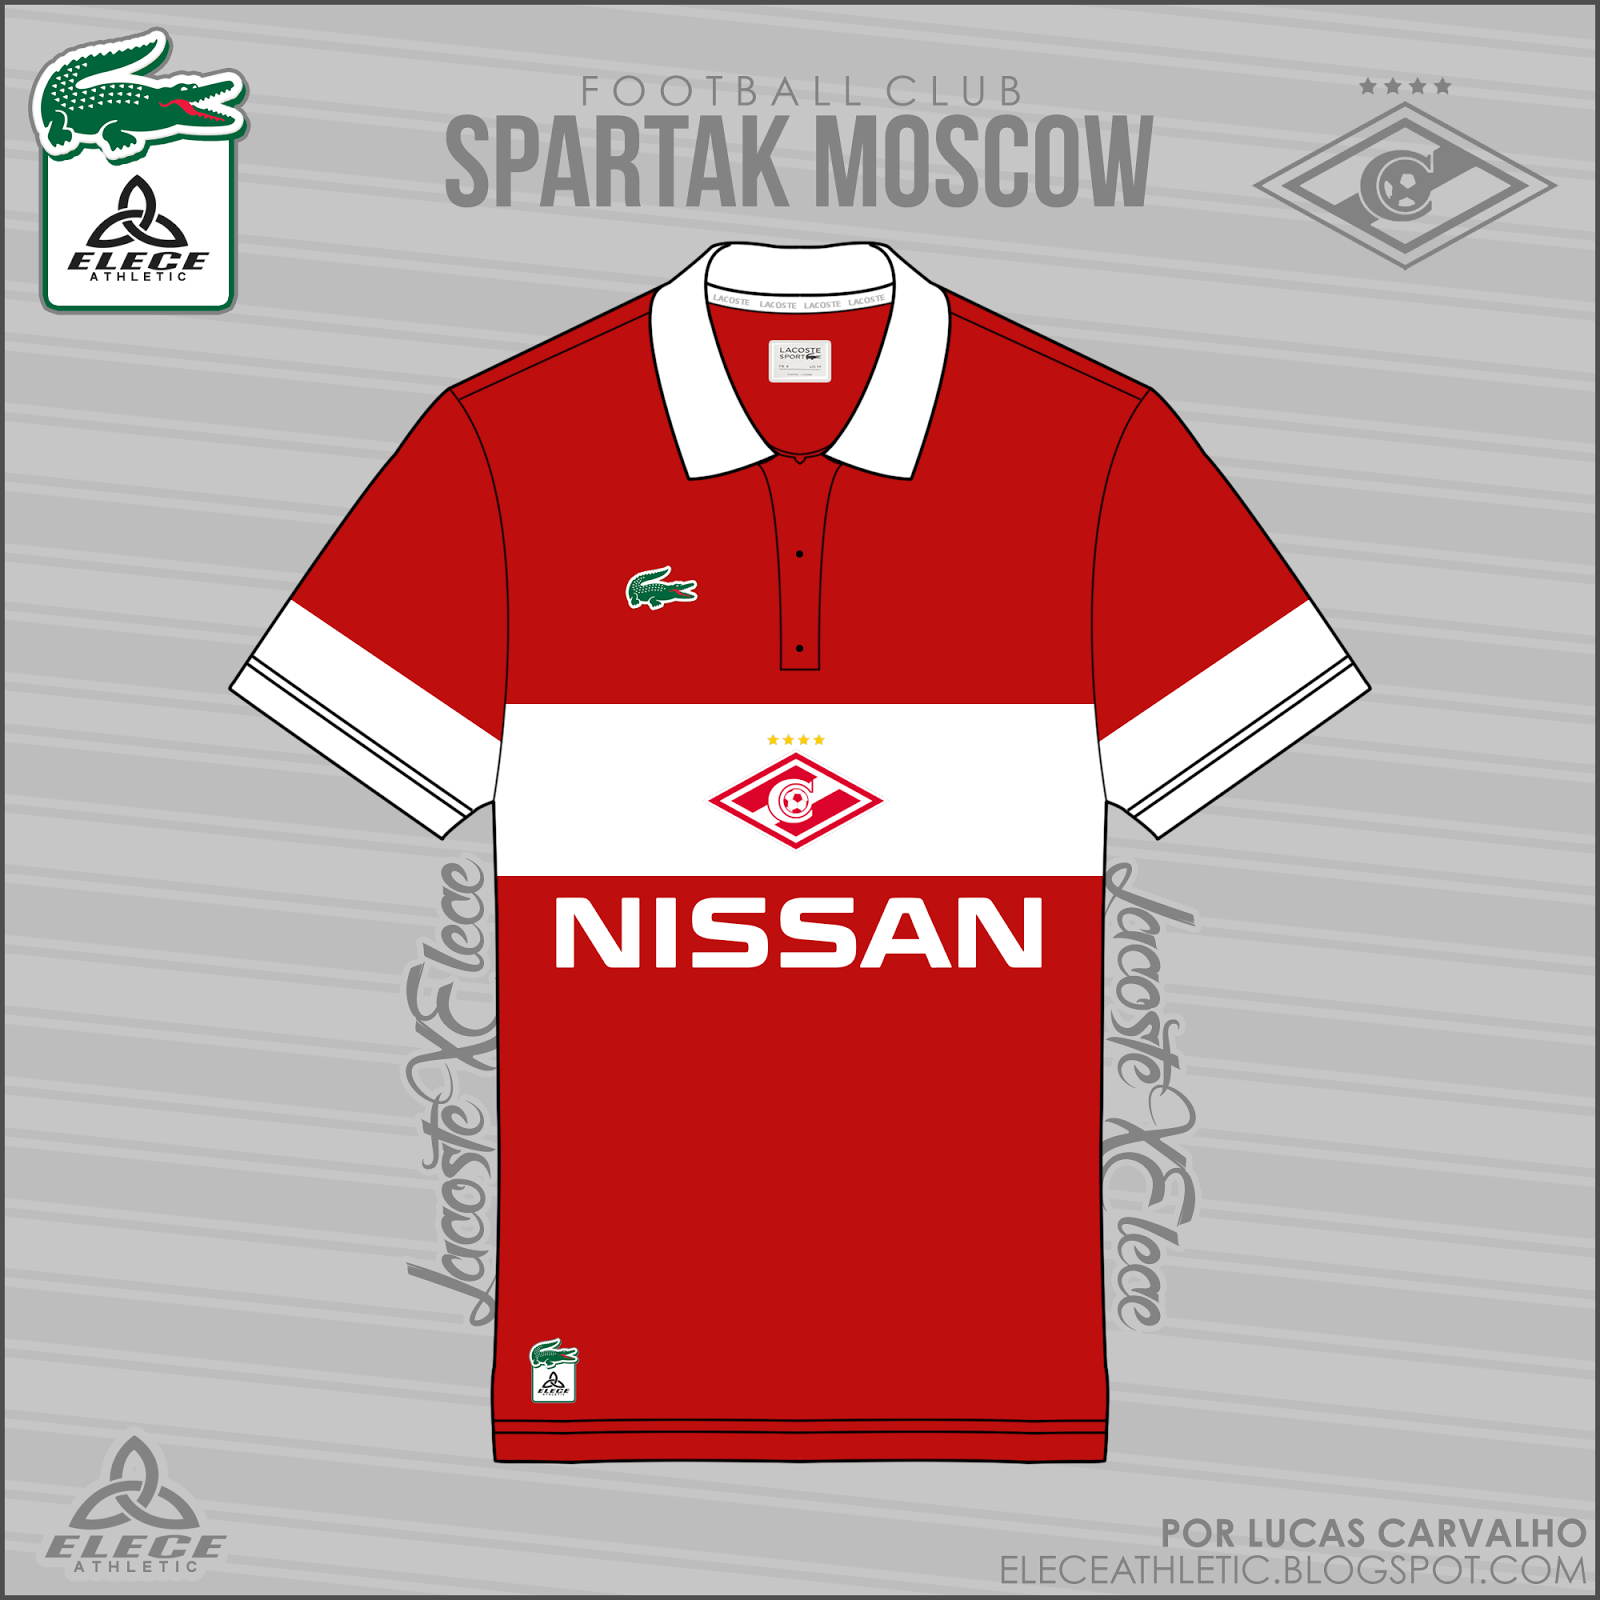 Spartak%2BMoscow.png